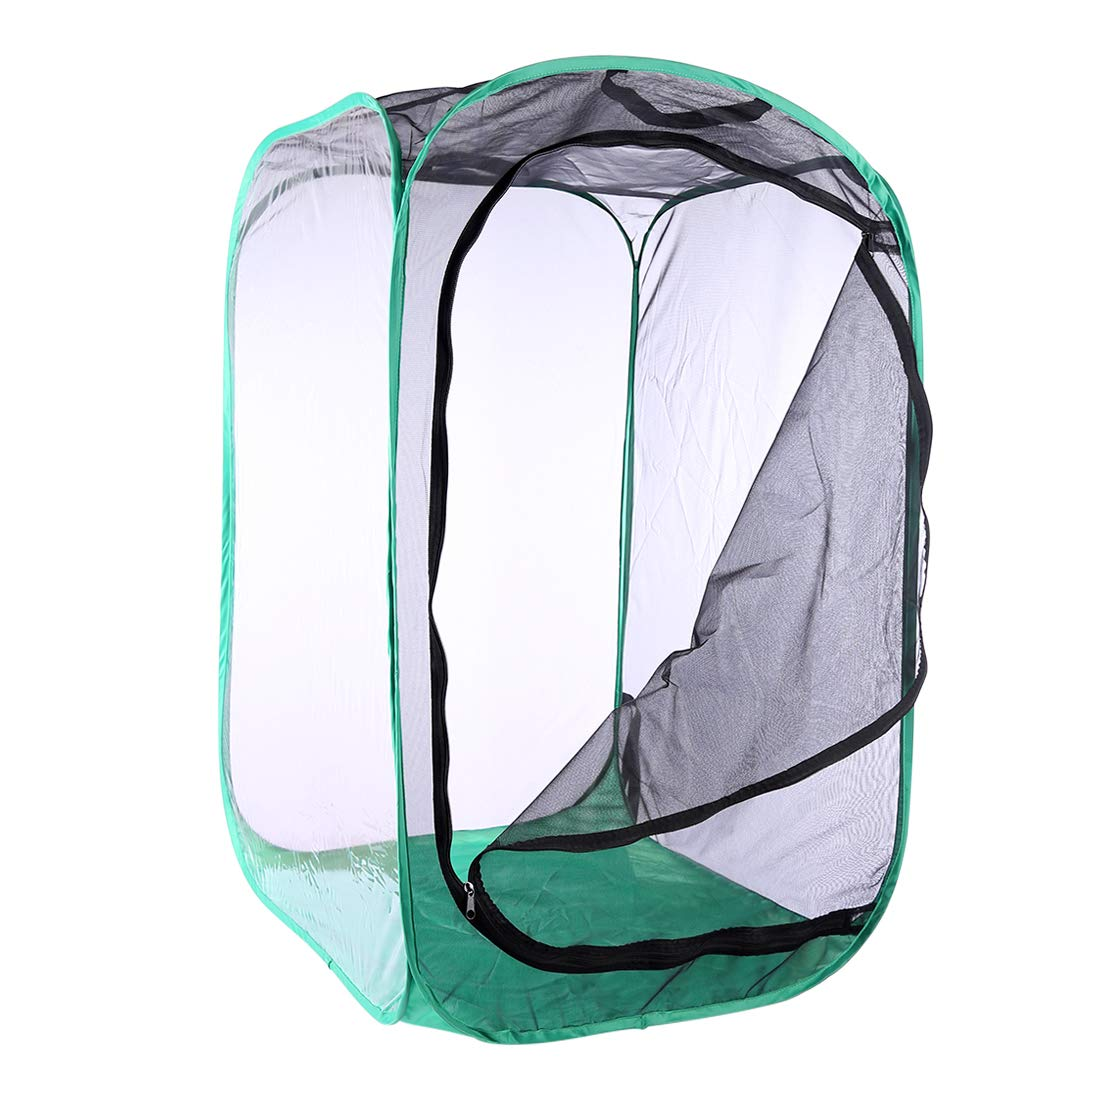 Yamix Insect and Butterfly Habitat Cage Terrarium Butterfly House Collapsible Pop-up 35.4'' Tall (Black + Green)